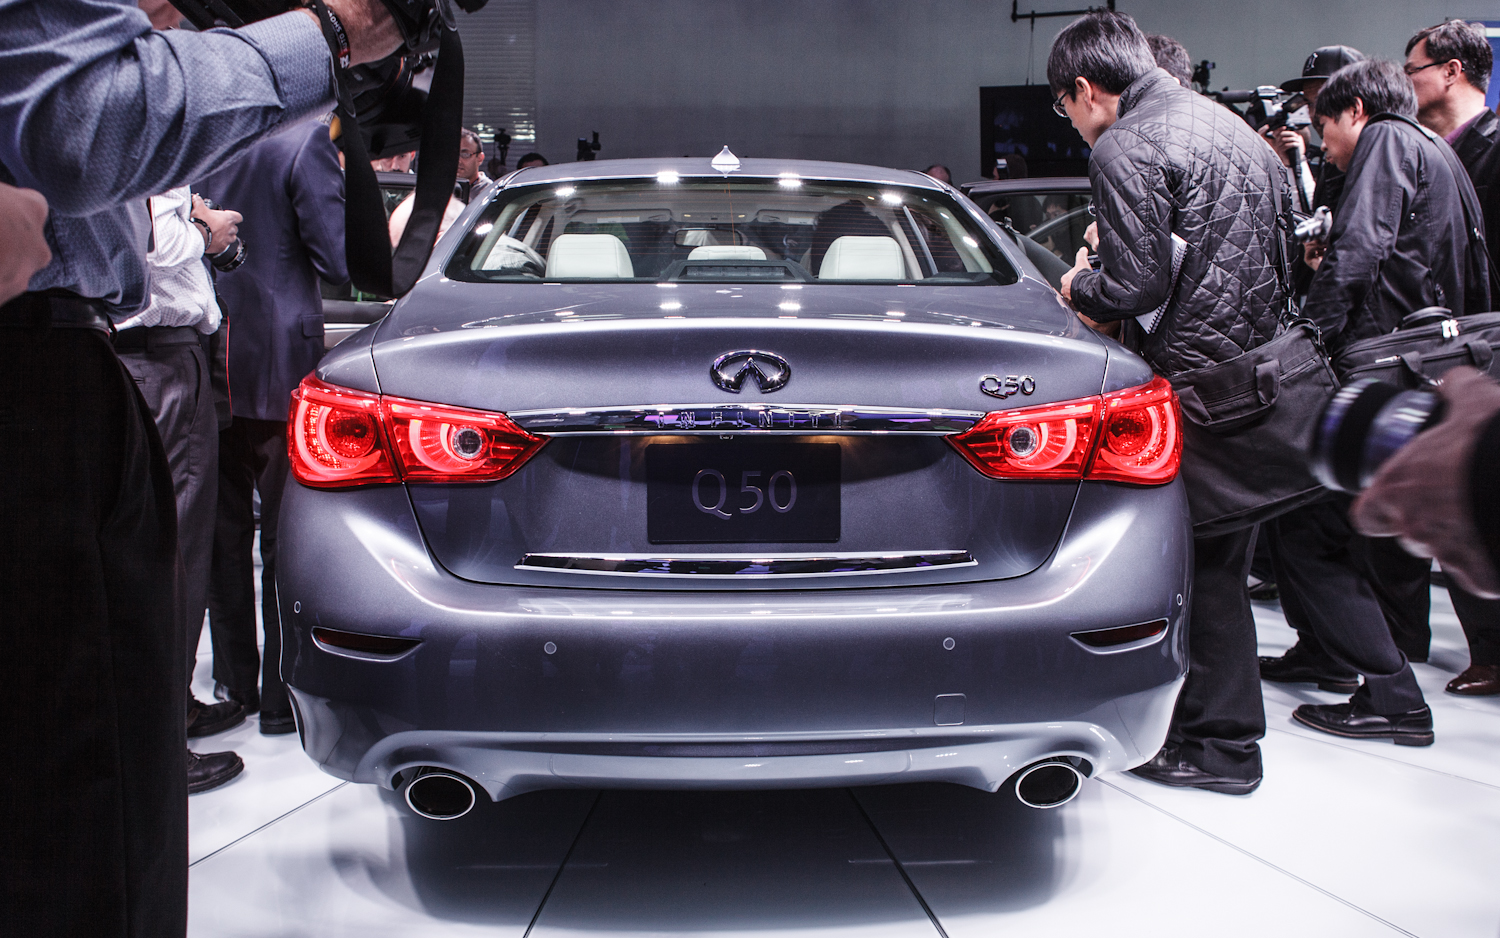 2014 Infiniti Q50 rear end Photo Gallery Wallpapers HD